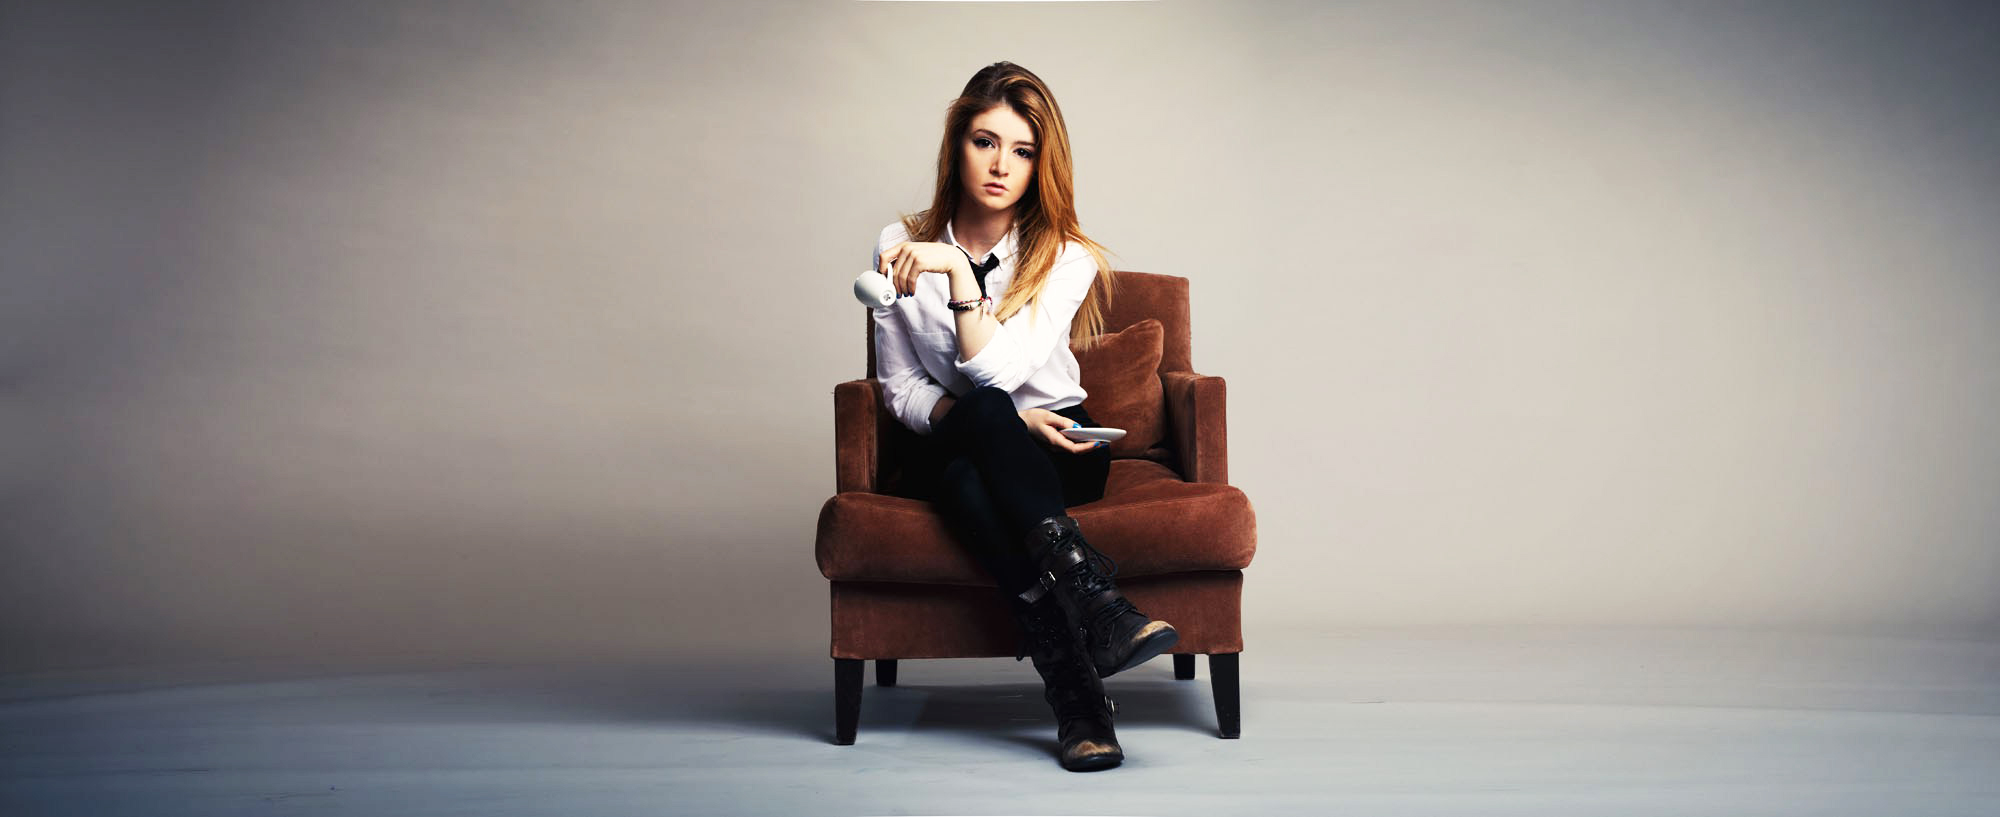 Chrissy Costanza Iphone Wallpaper Awesome Chrissy Costanza Wallpaper Full Hd Pictures